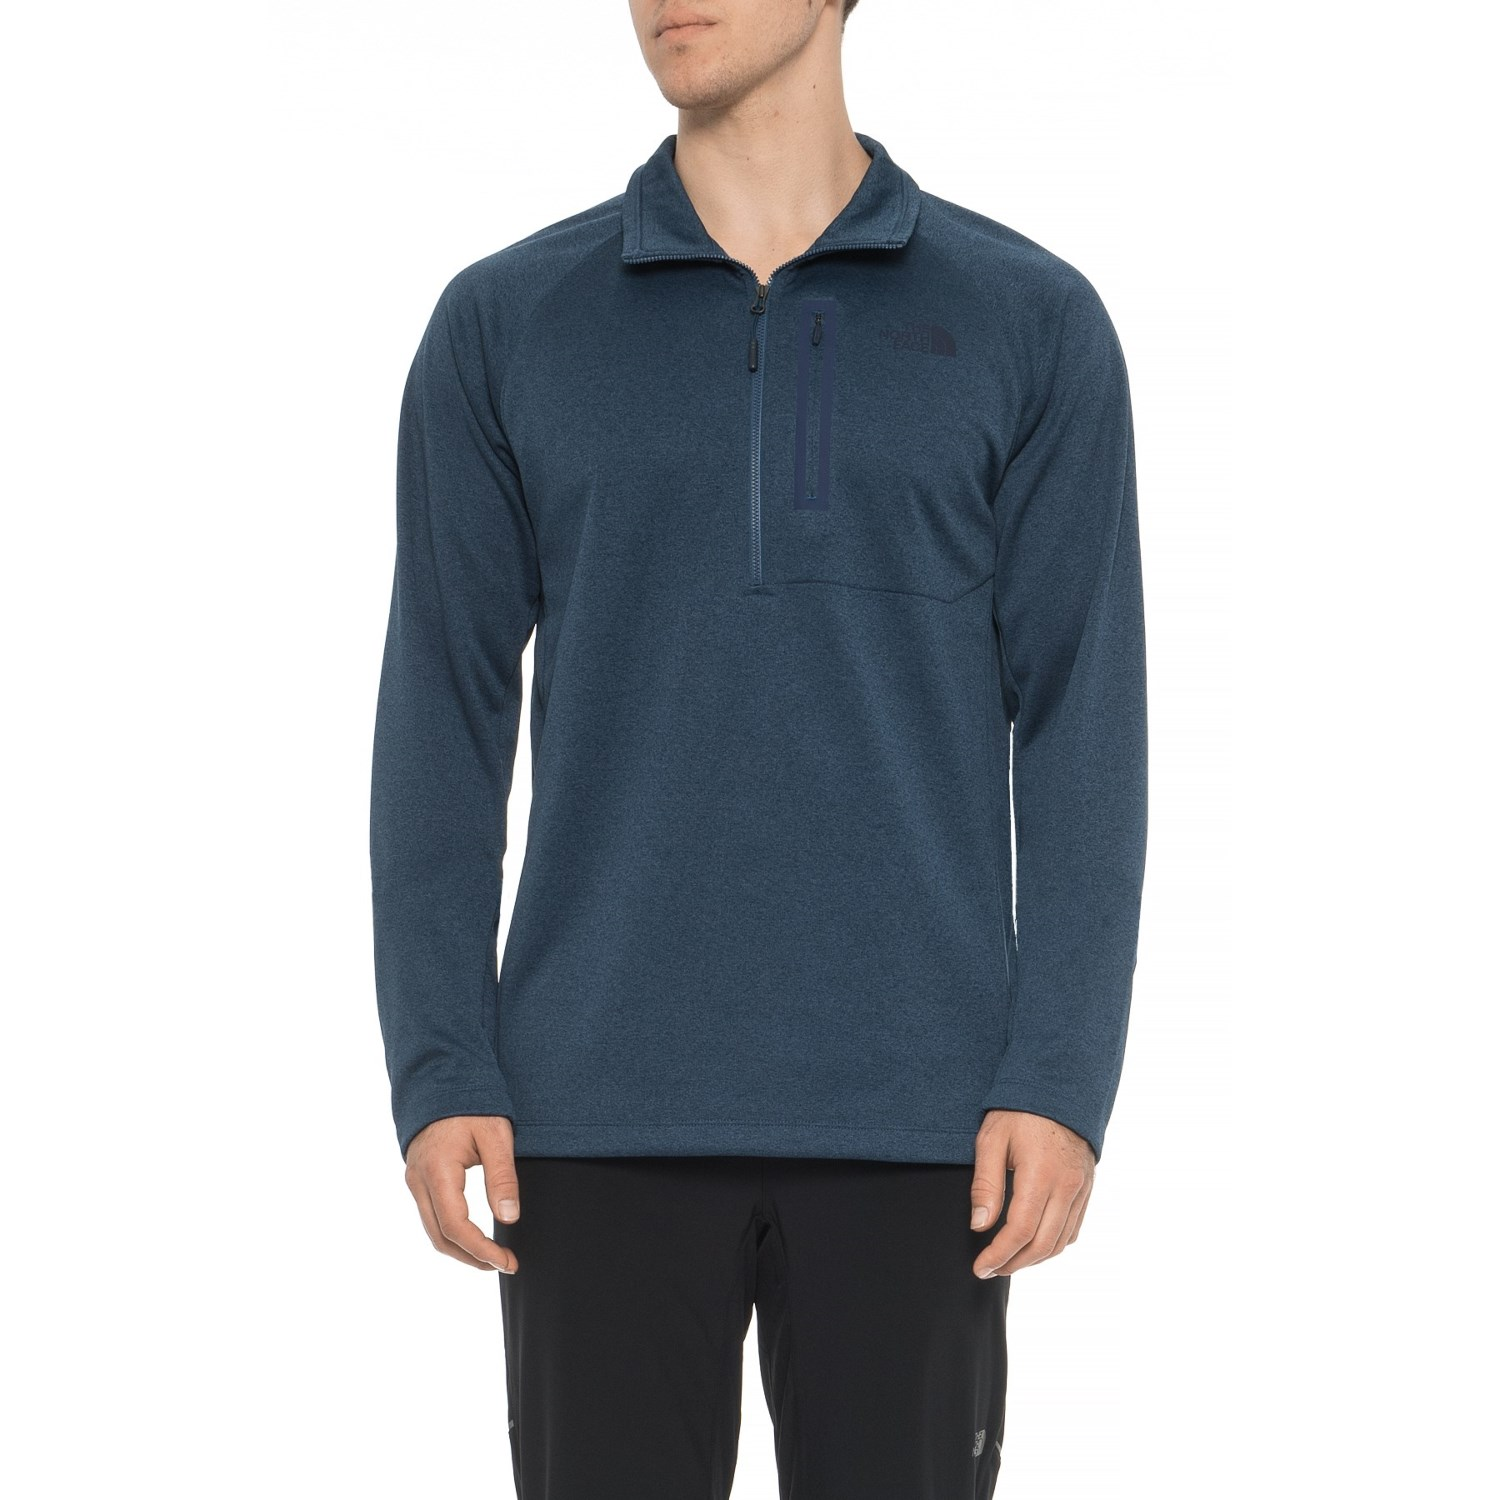 81745350f The North Face Canyonlands Fleece Jacket (For Men)